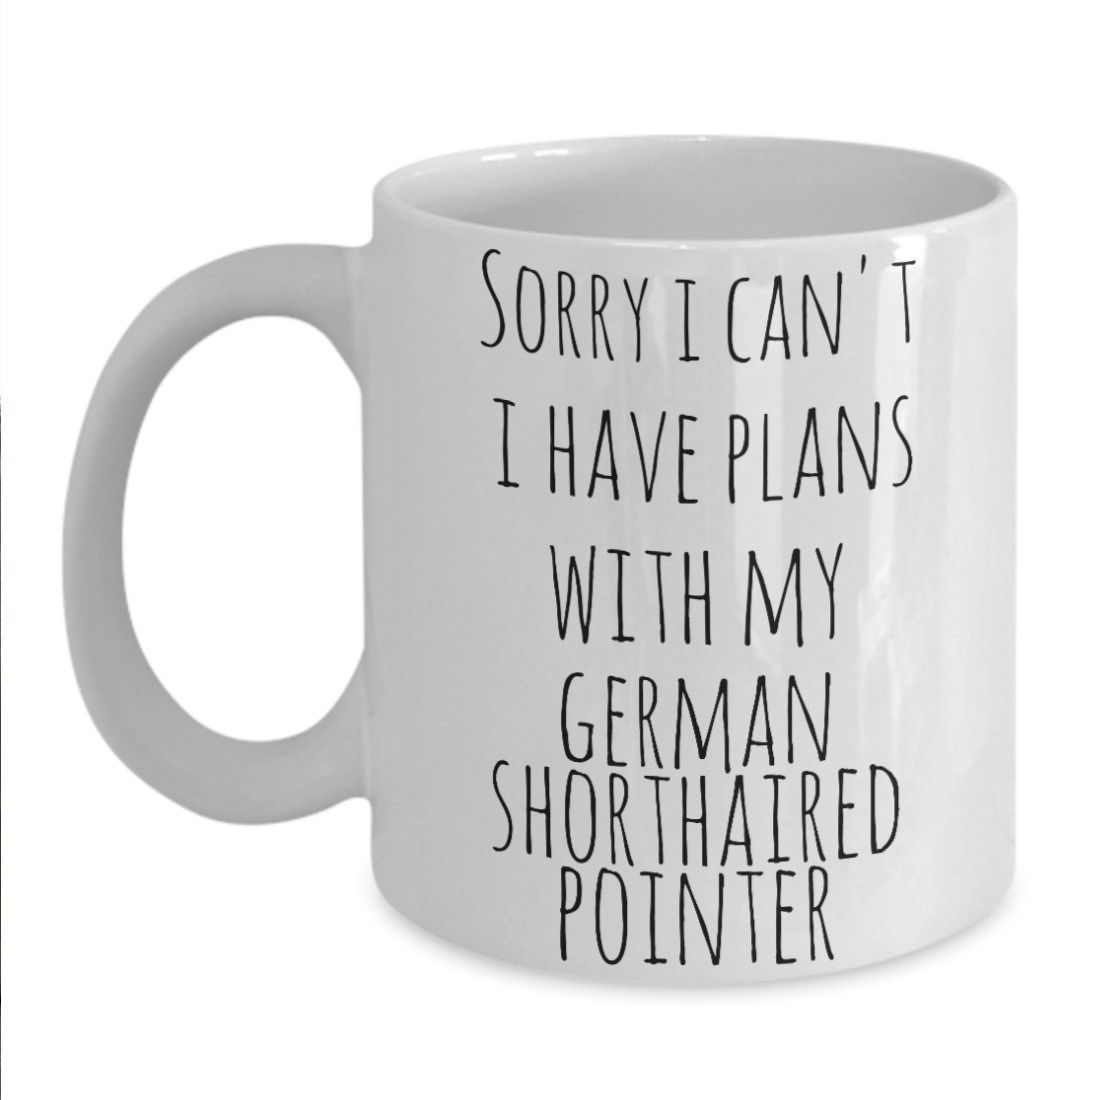 German Shorthair Mug Sorry I Cant I Have Plans With My German Shorthaired Pointe - $18.57 - $21.36